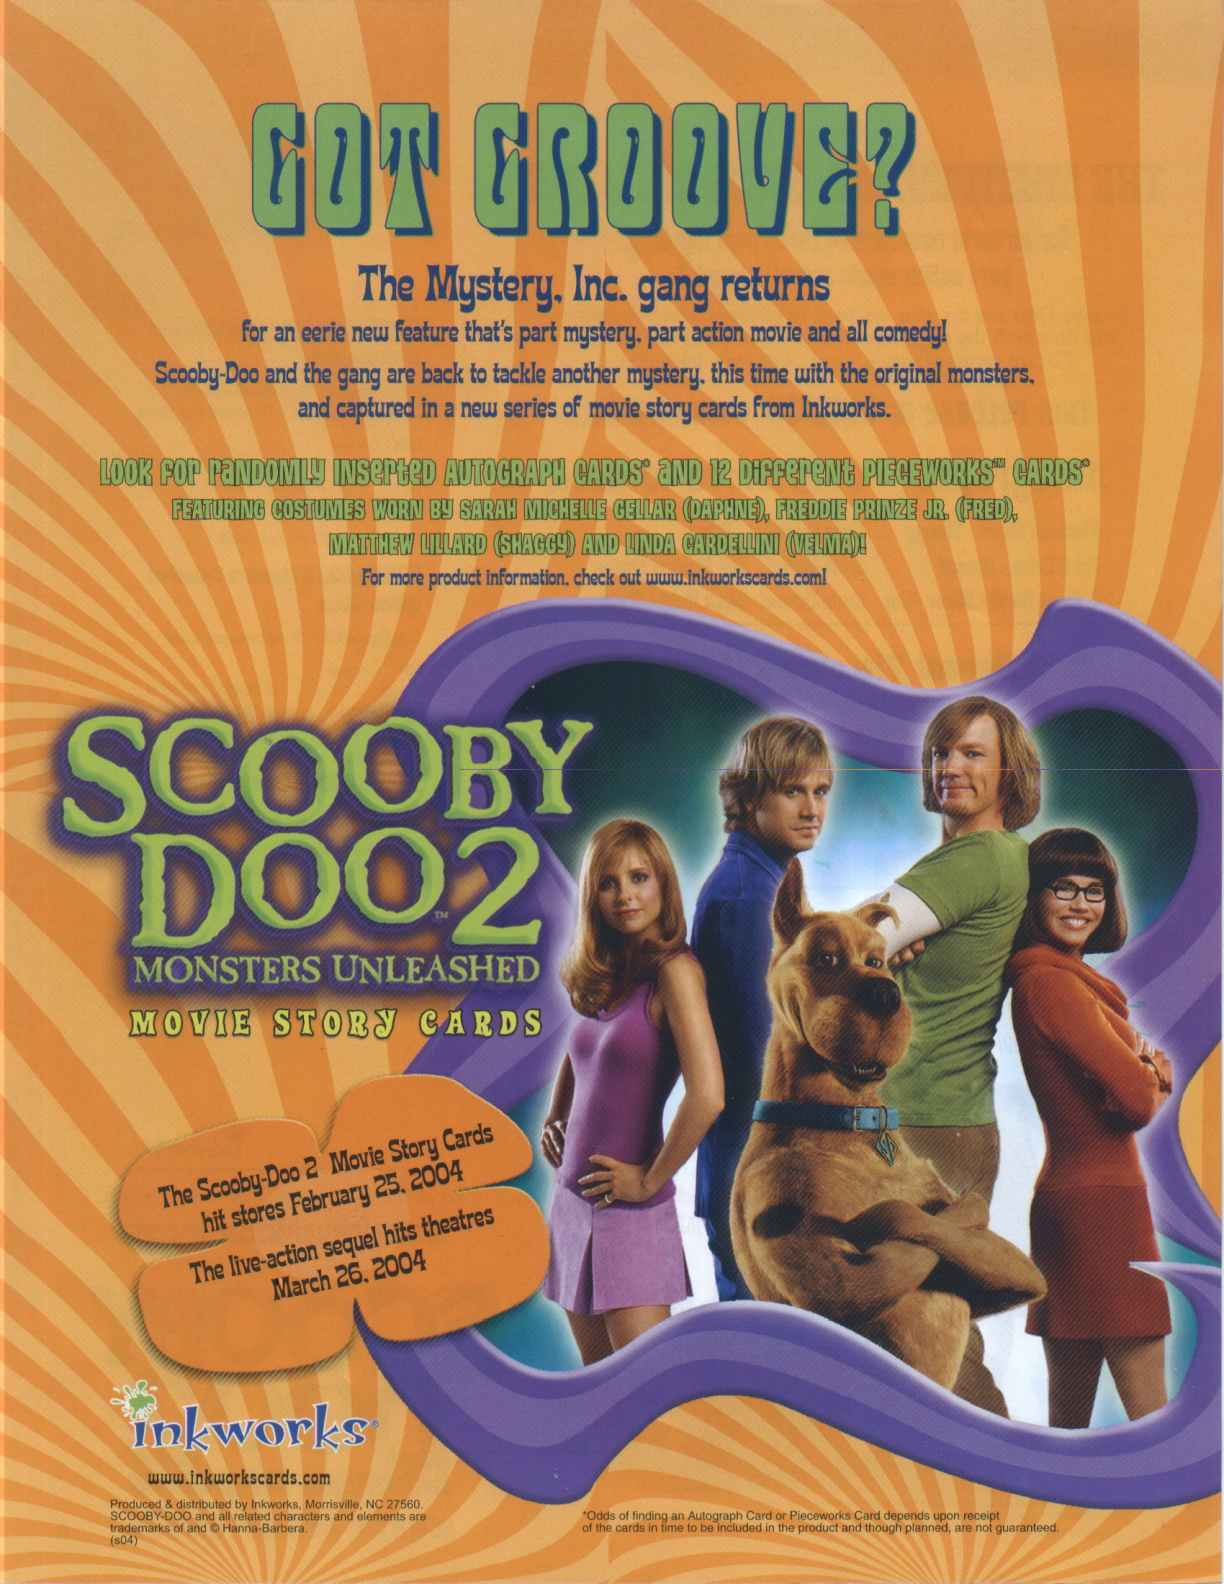 Scooby Doo 2 Monsters Unleashed Box Potomac Distribution